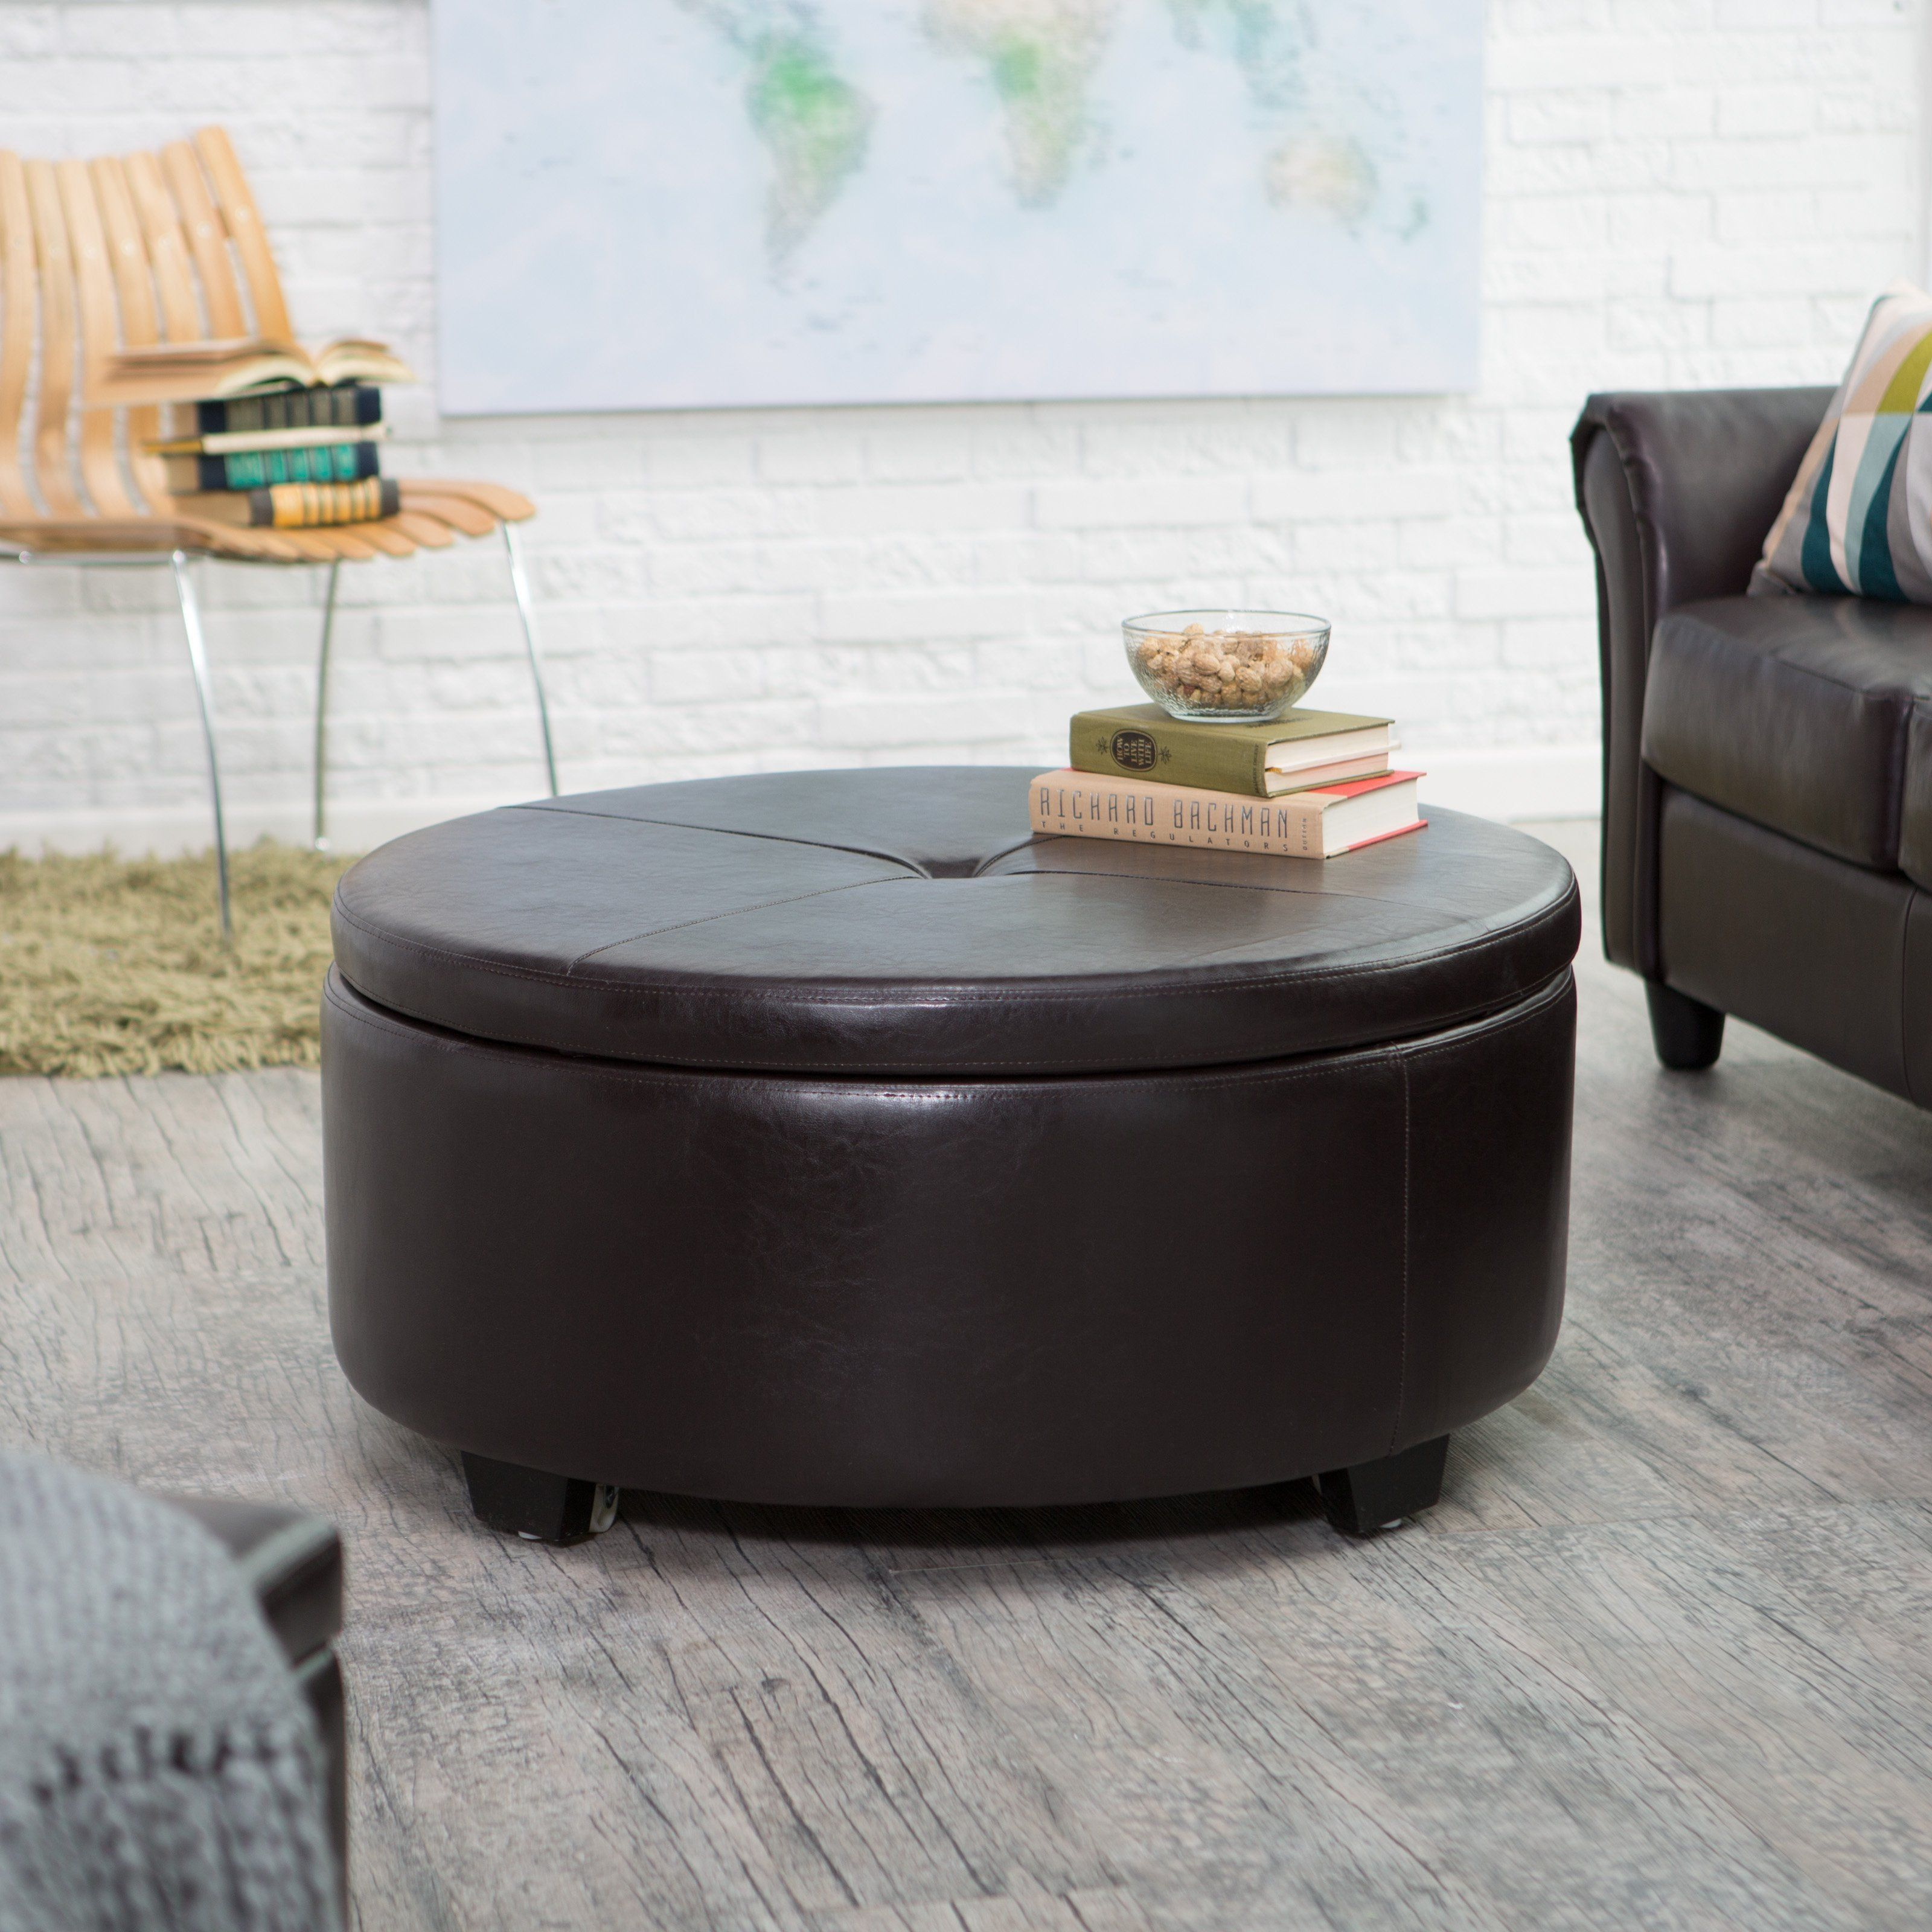 Round Coffee Table With 4 Ottomans Download Round Leather Ottoman Coffee Ta In 2020 Storage Ottoman Coffee Table Leather Ottoman Coffee Table Coffee Table With Storage [ 3200 x 3200 Pixel ]